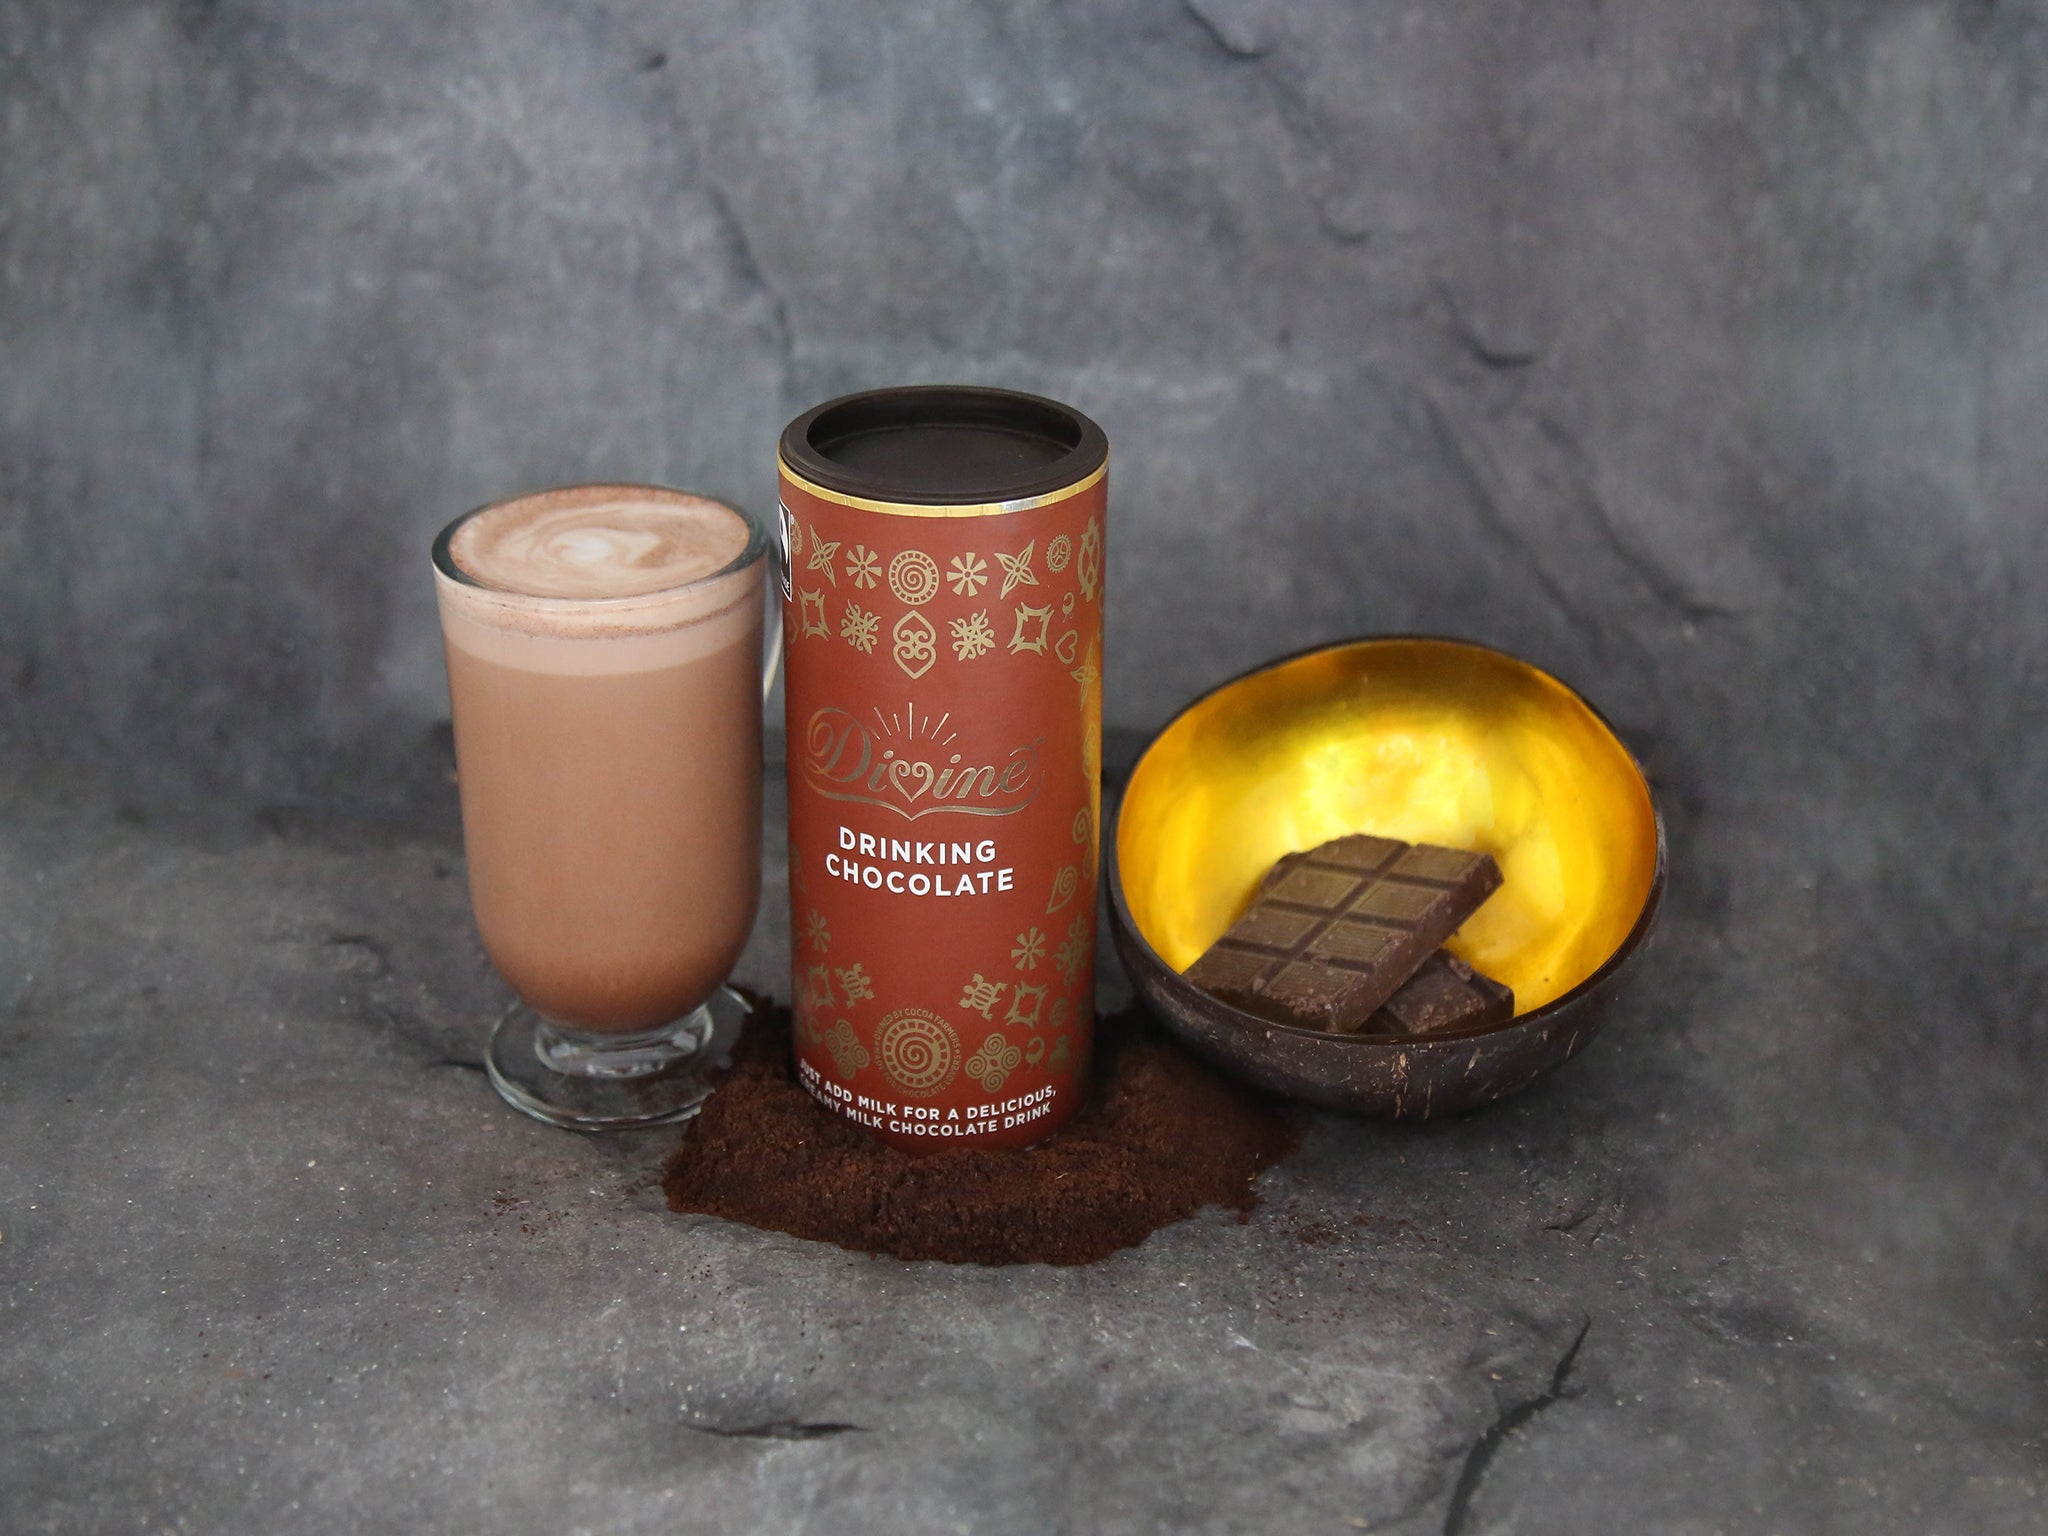 Divine Drinking Chocolate (400g)